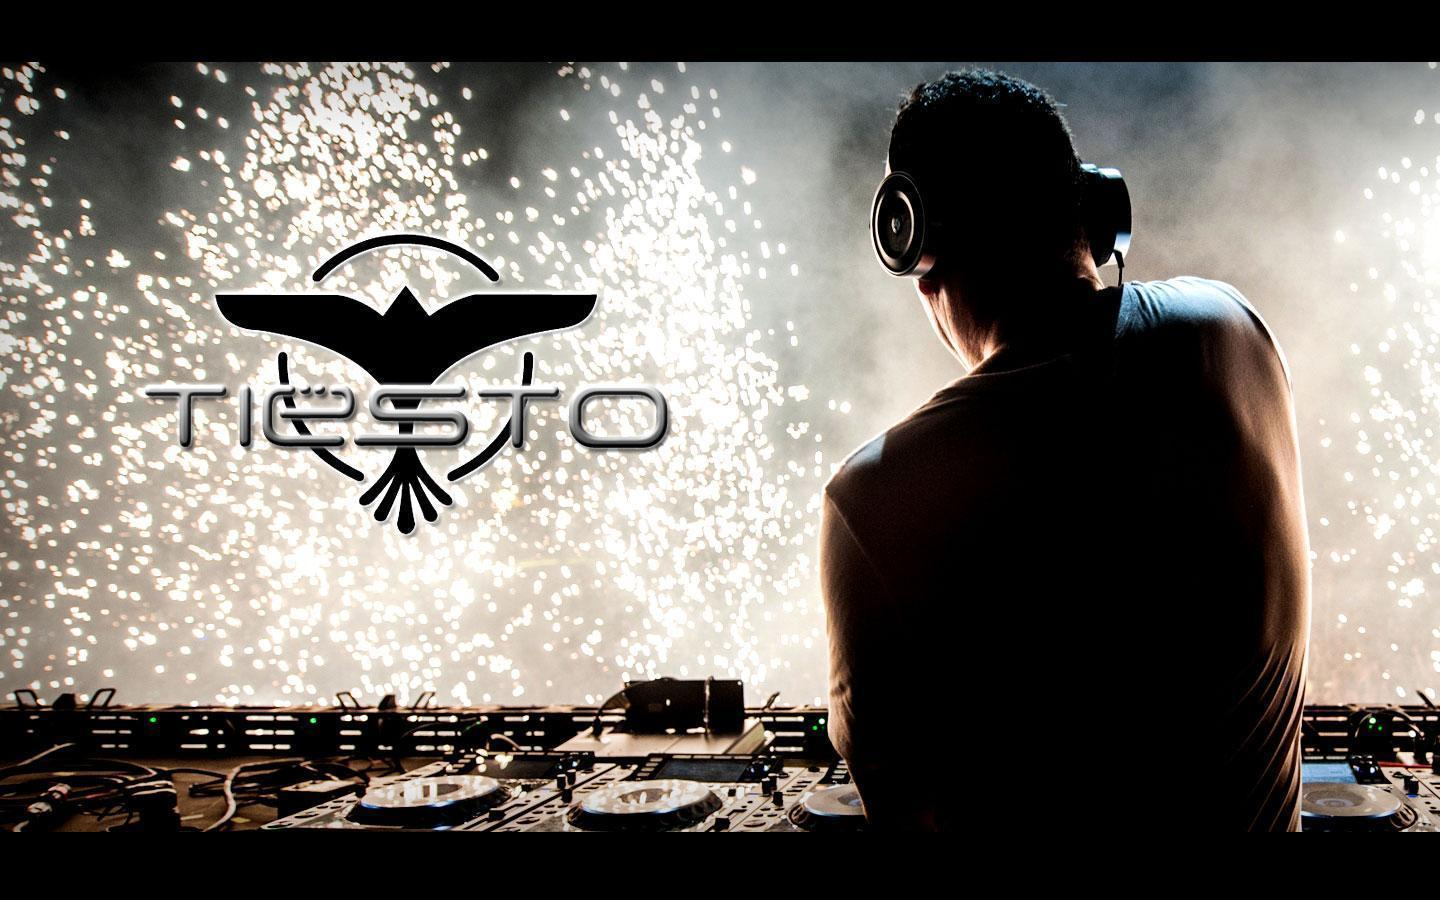 Dj Tiesto Wallpapers 2016 1440x900